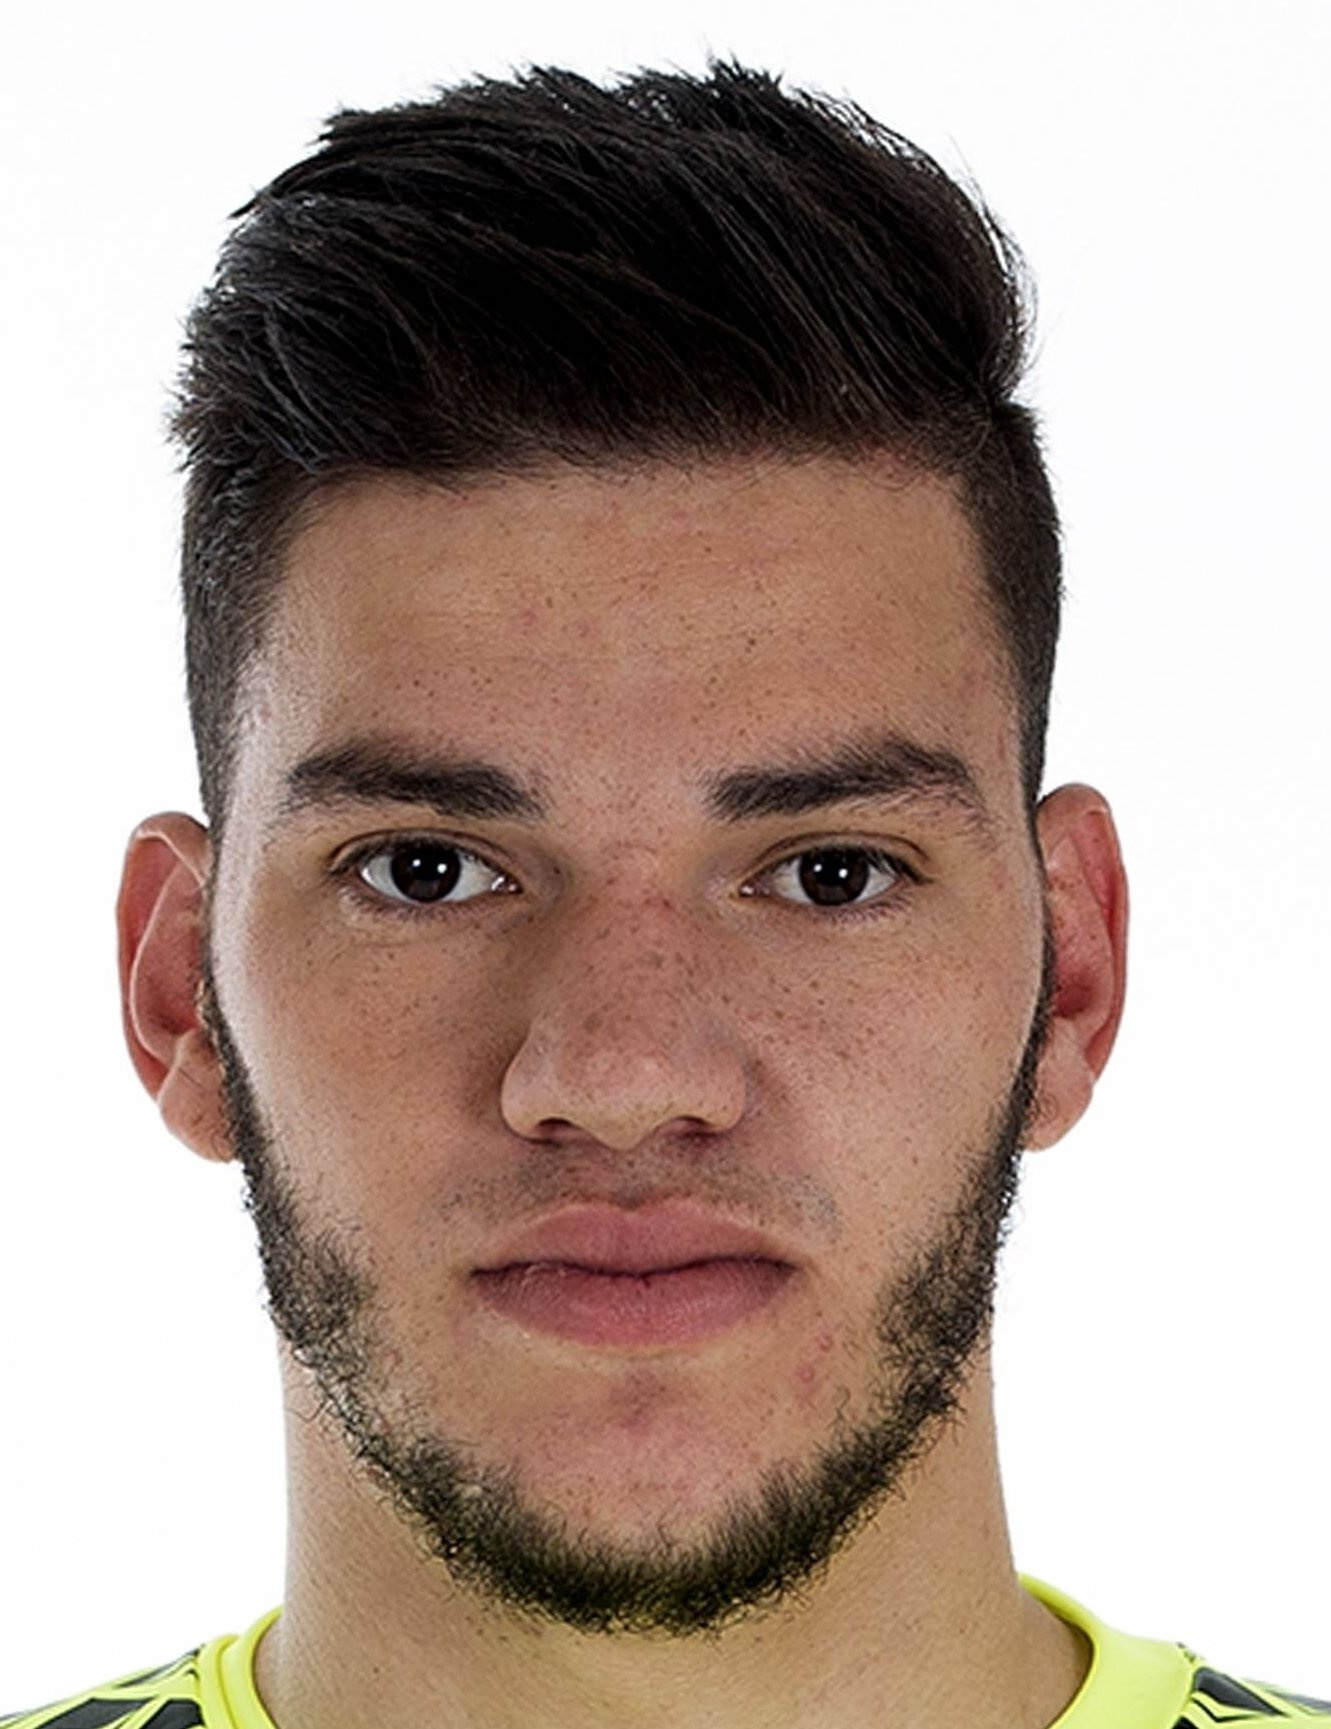 Ederson - Player Profile 18/19 | Transfermarkt